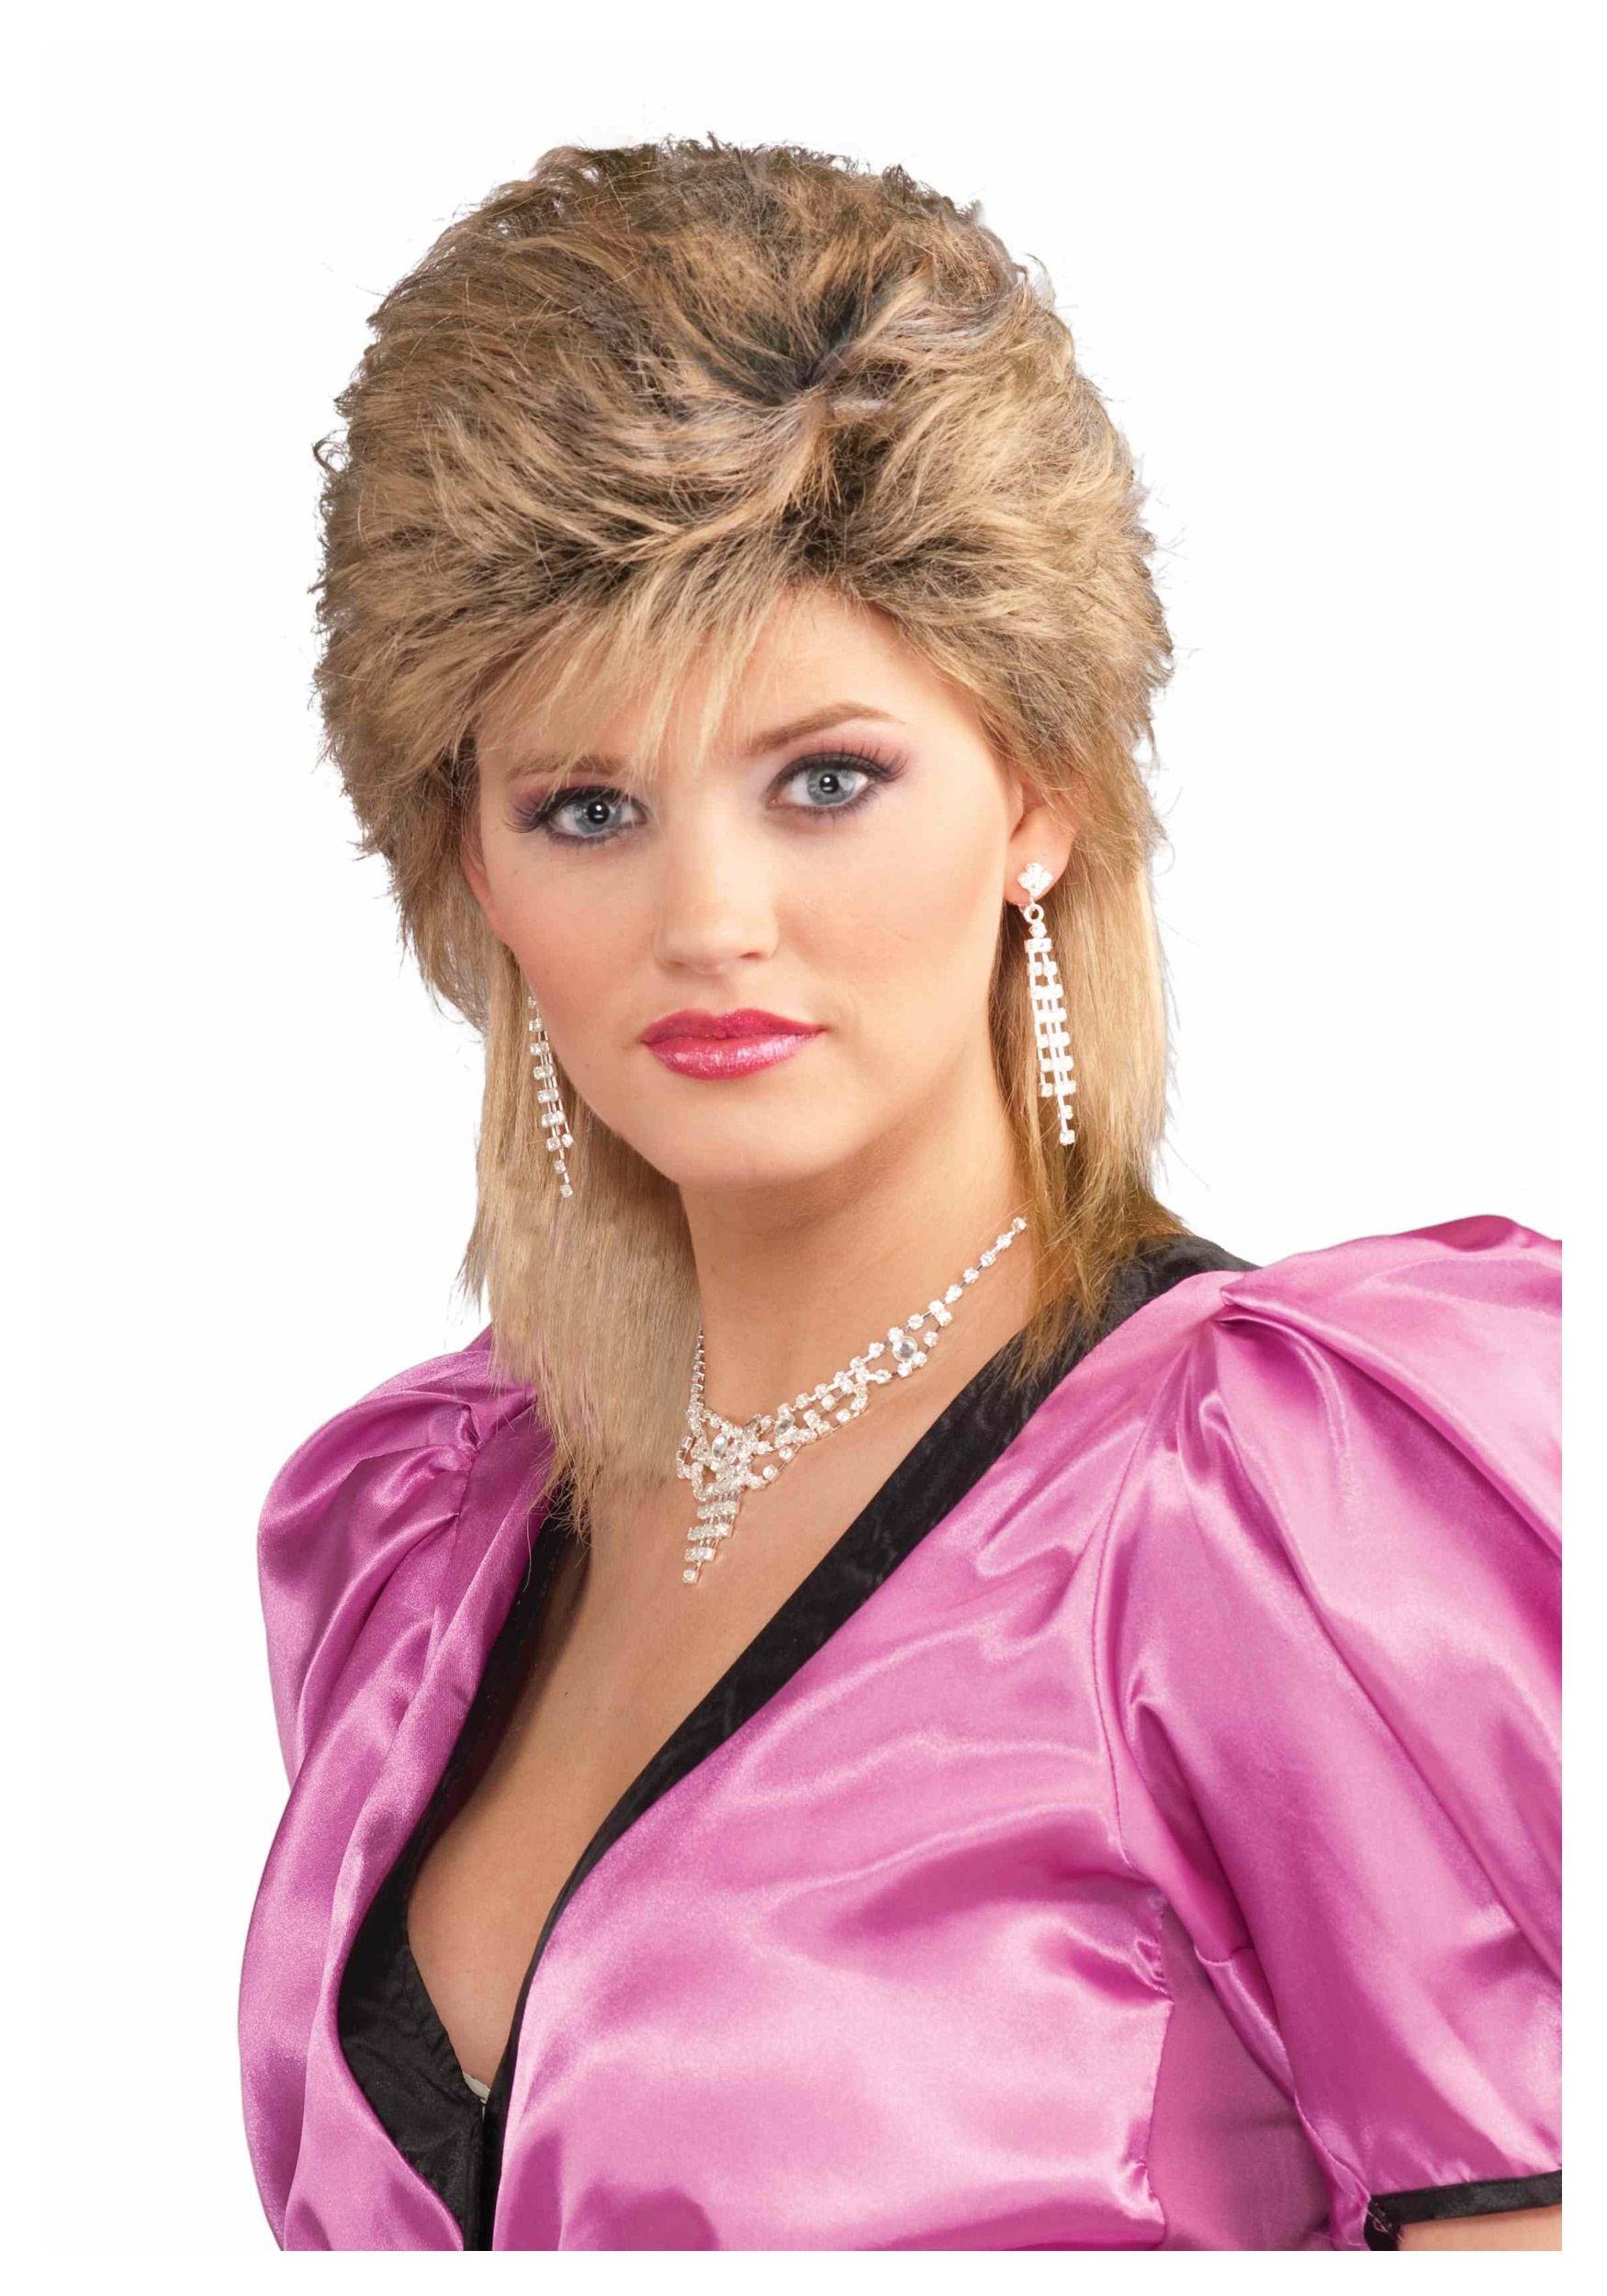 80s hairstyles on Pinterest | 80s Hairstyles, 80s Hair and Nick Rhodes